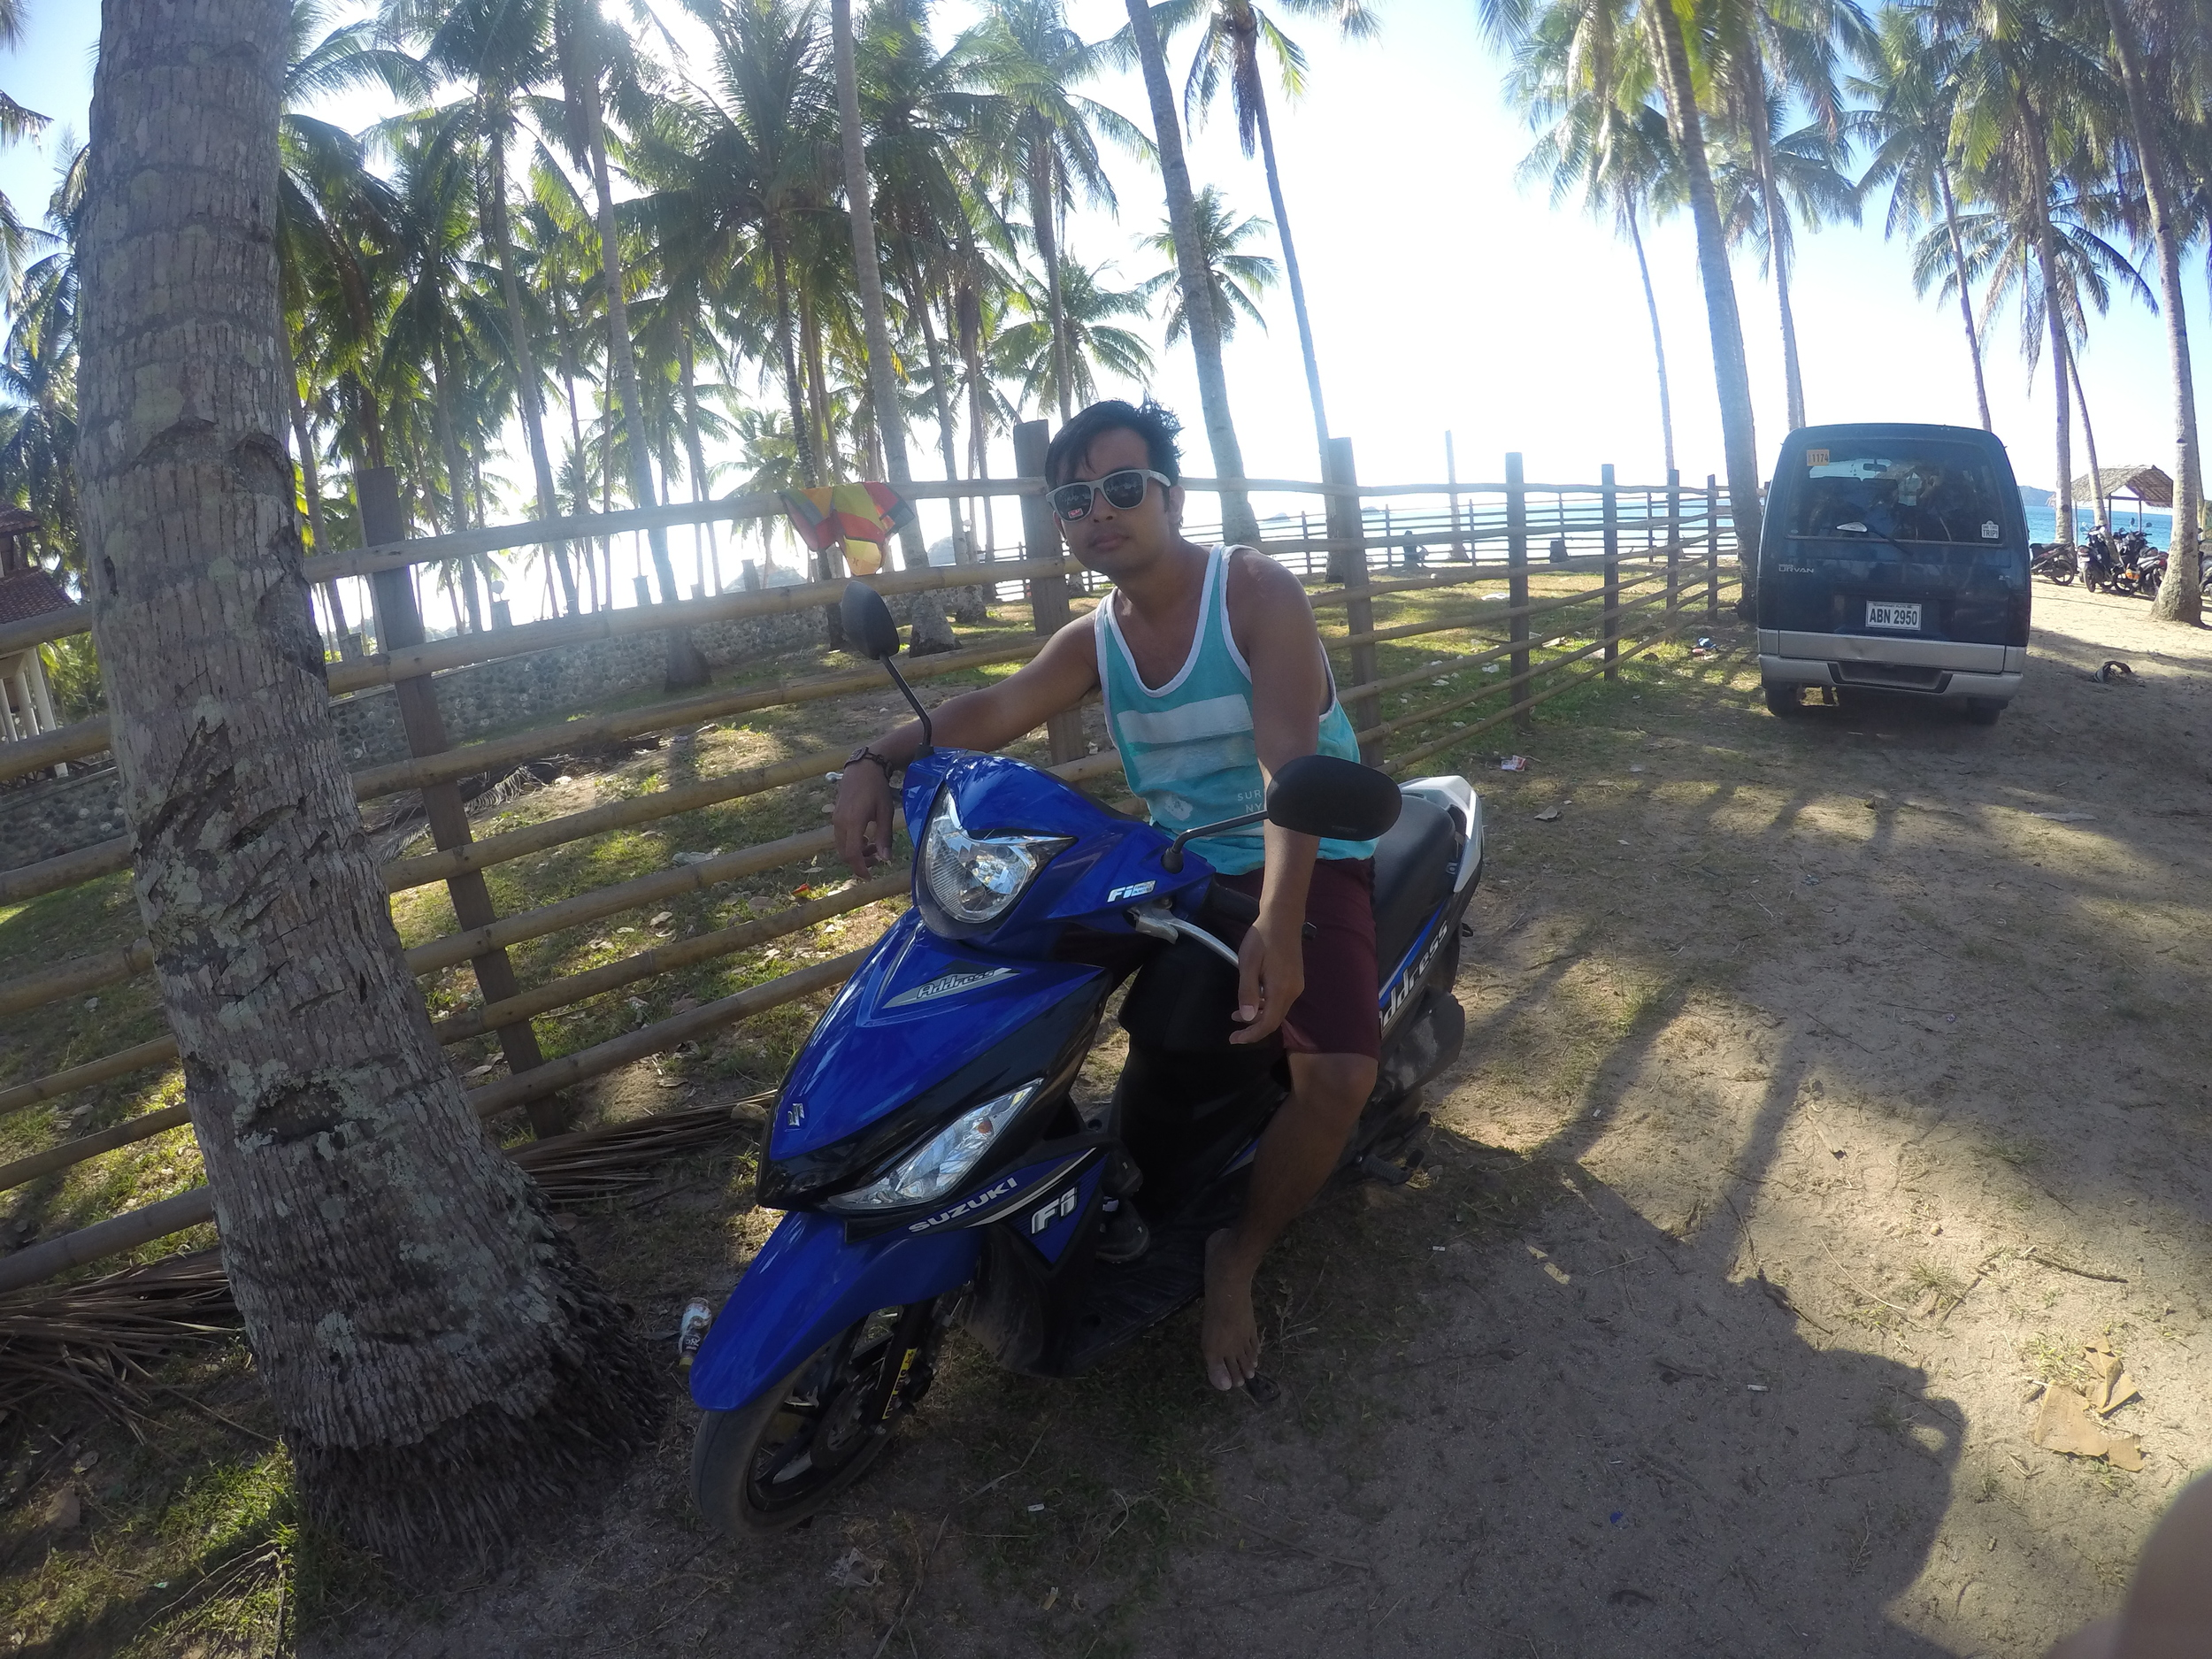 Motorbike in Nacpan Beach